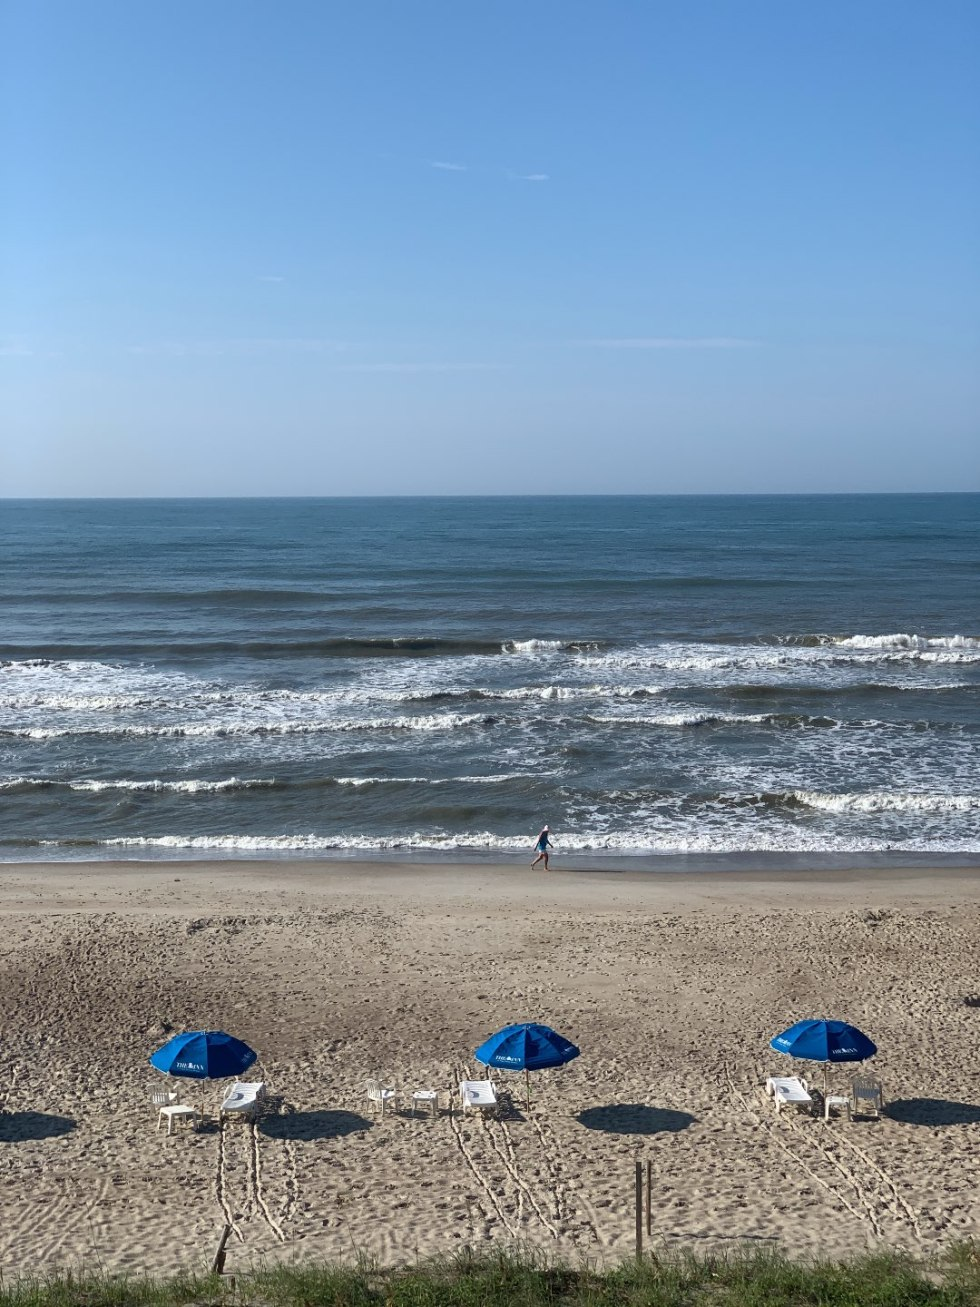 10 North Carolina Destinations Perfect for a Socially Distant Getaway - I'm Fixin' To - @mbg0112 | North Carolina Destinations by popular North Carolina blog, I'm Fixin' To: image of Pine Knoll Shores.